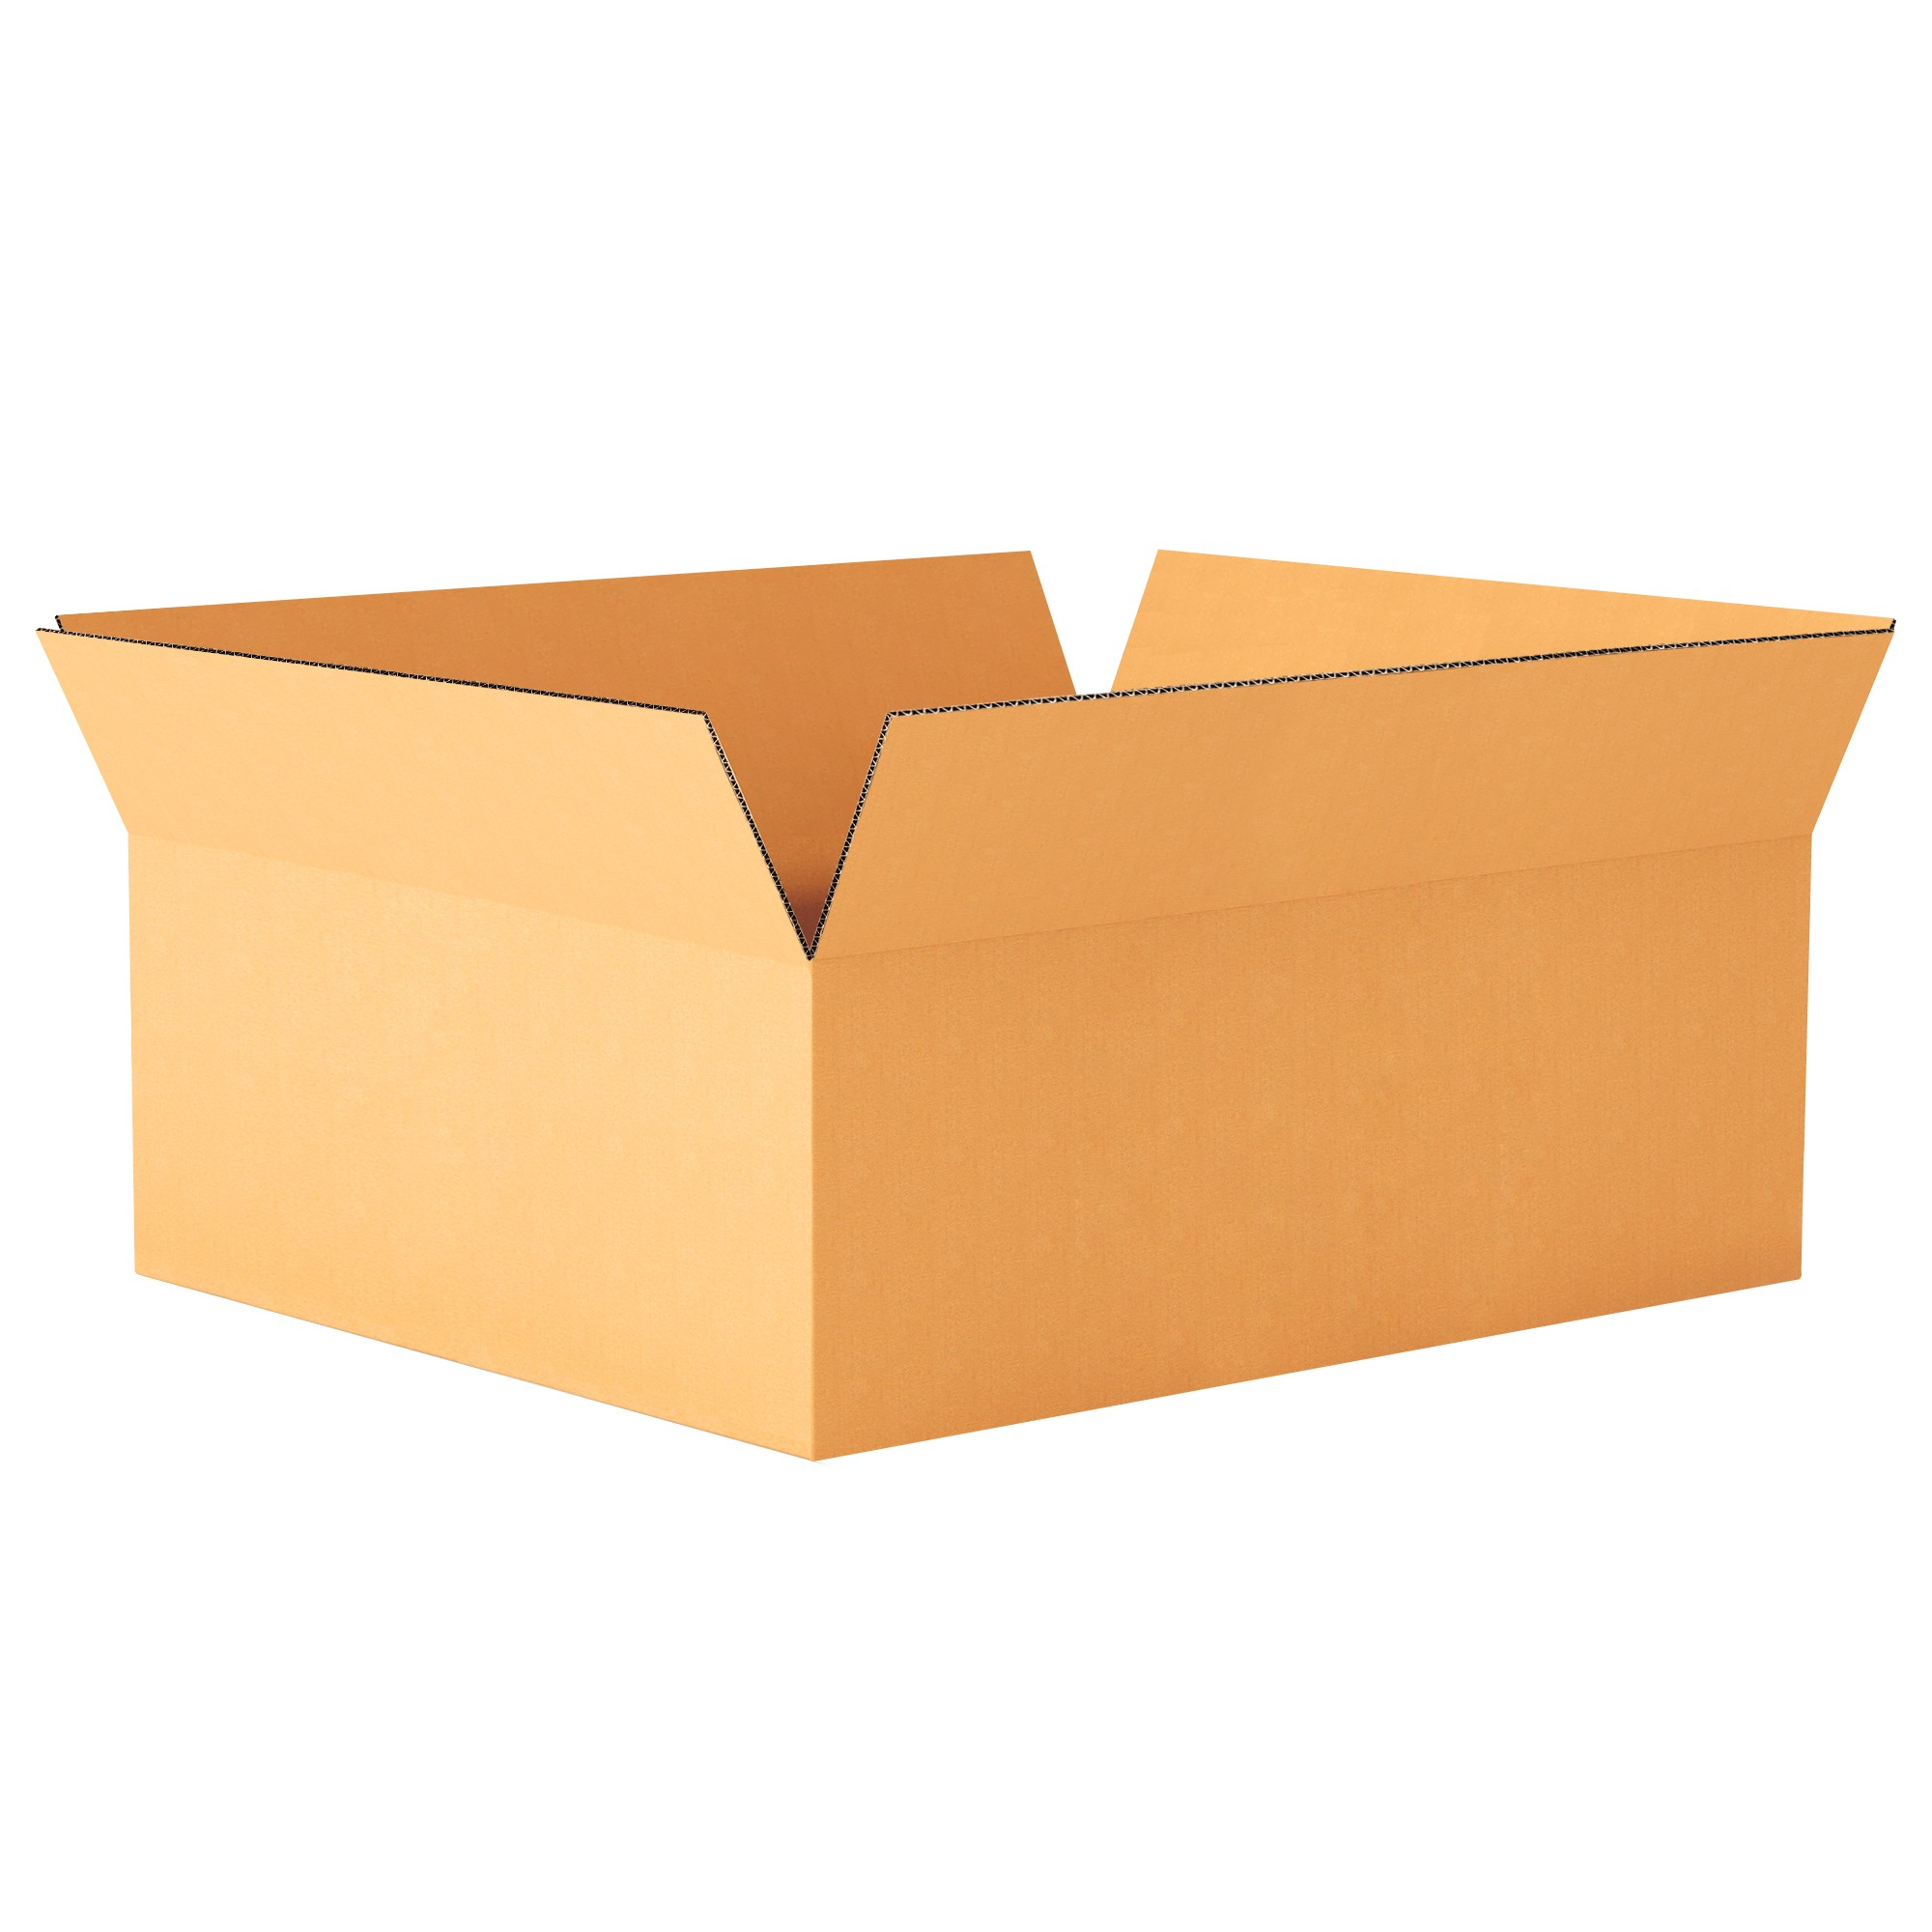 """TOTALPACK® 17 x 11 x 11"""" Single Wall Corrugated Boxes 25 Units"""